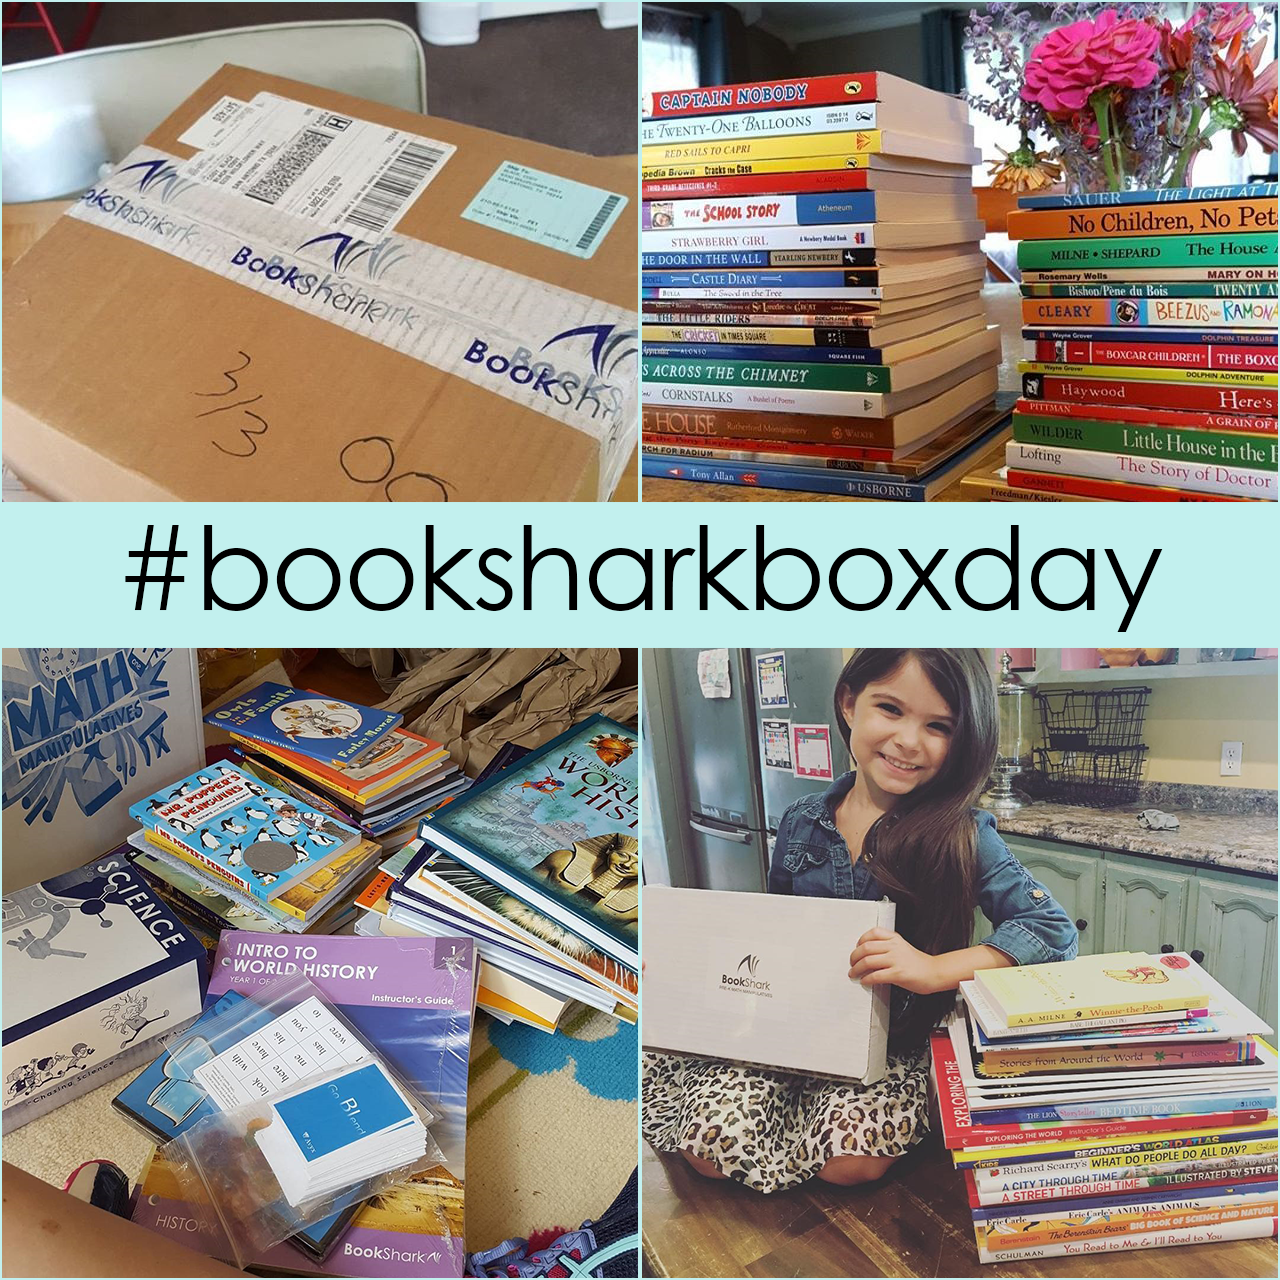 BookShark Box Day Photos from Instagram • photo credits clockwise from top left: @switchbladeseasea, @lynnfrey, @love_most_sweet, @jennlylarrabee